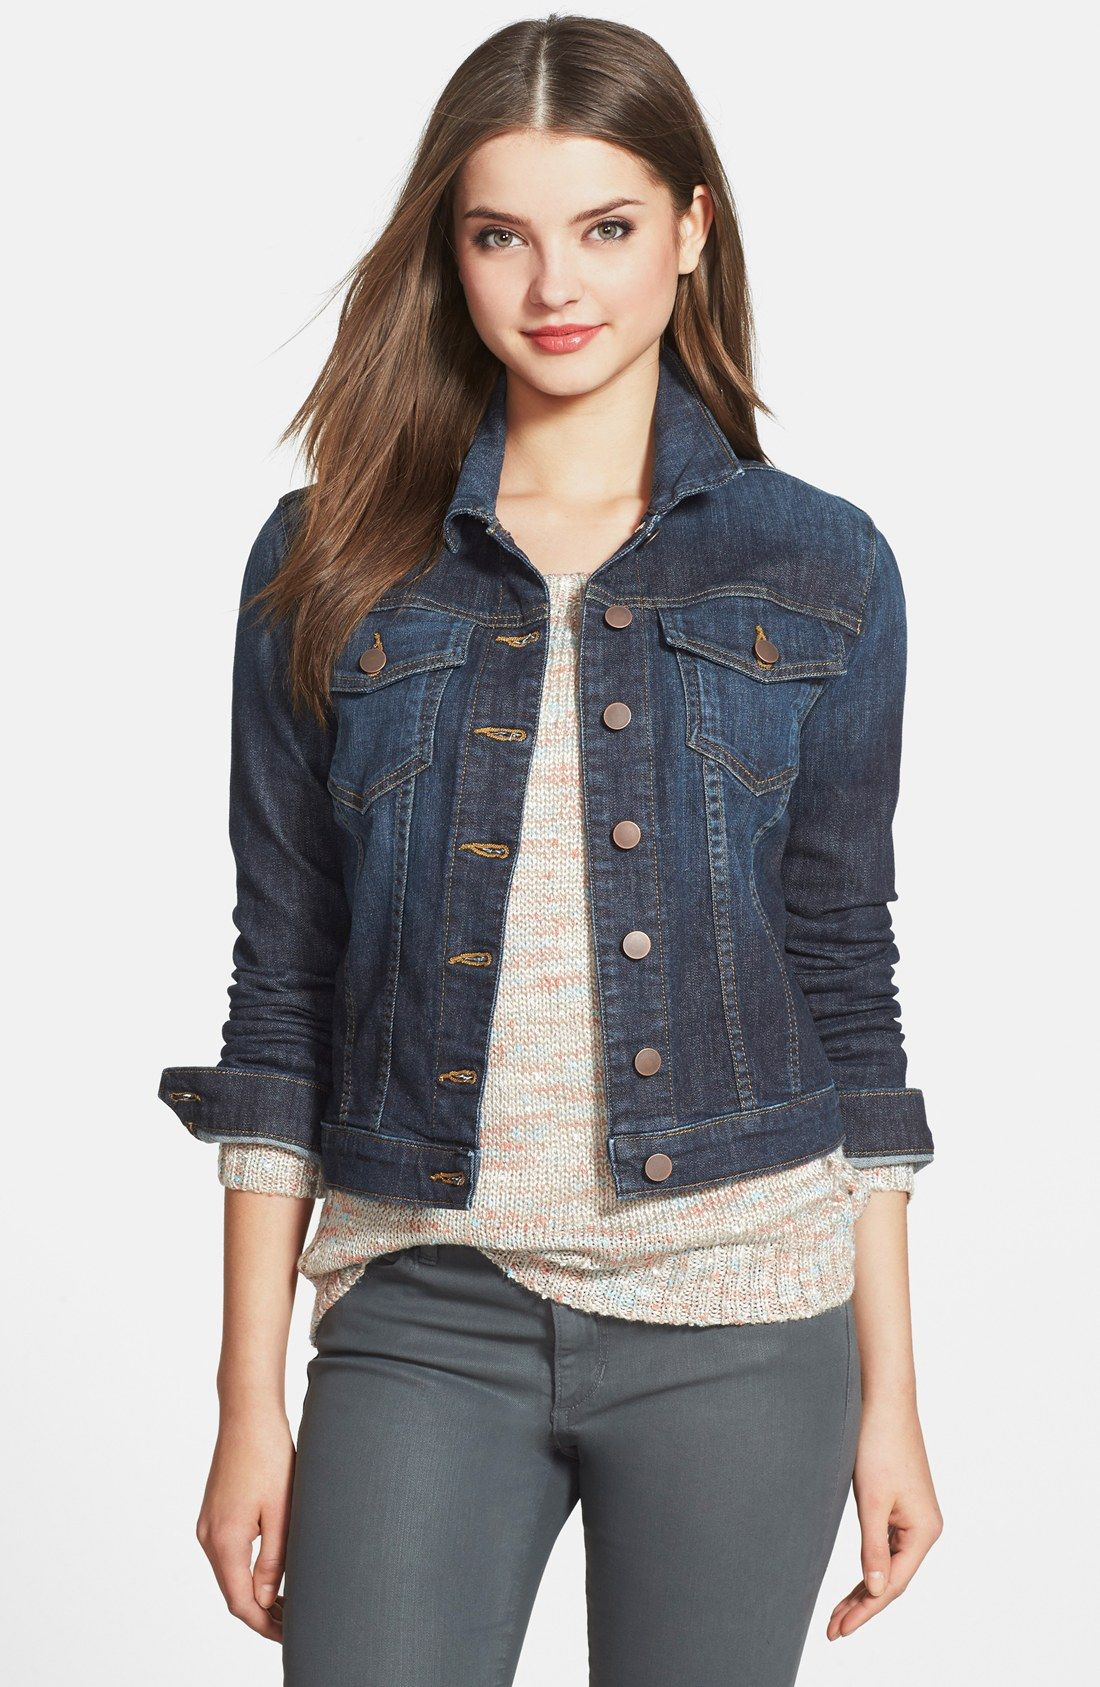 Creating Your Core Closet | Denim jackets, Nordstrom and Wardrobes